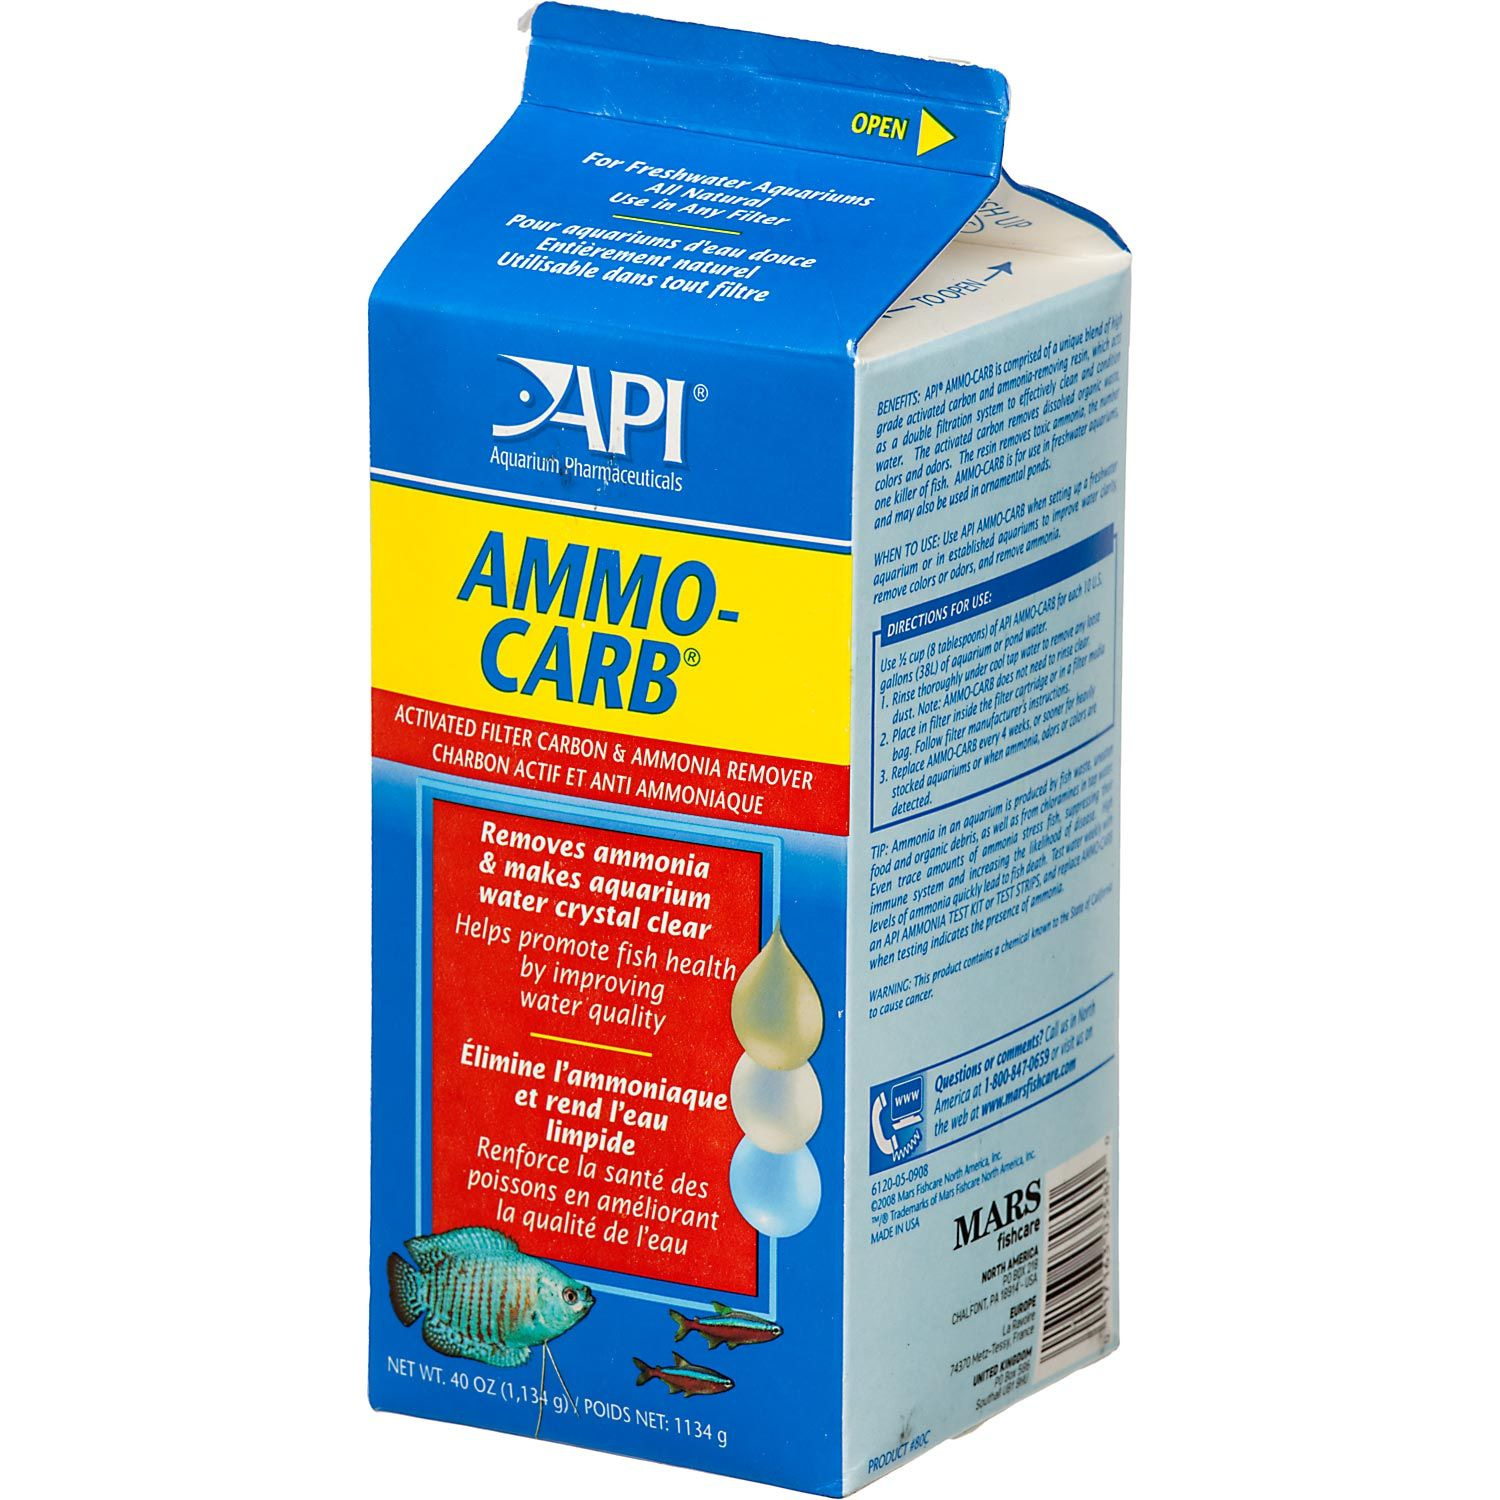 API Ammo-Carb Activated Filter Carbon & Ammonia Remover